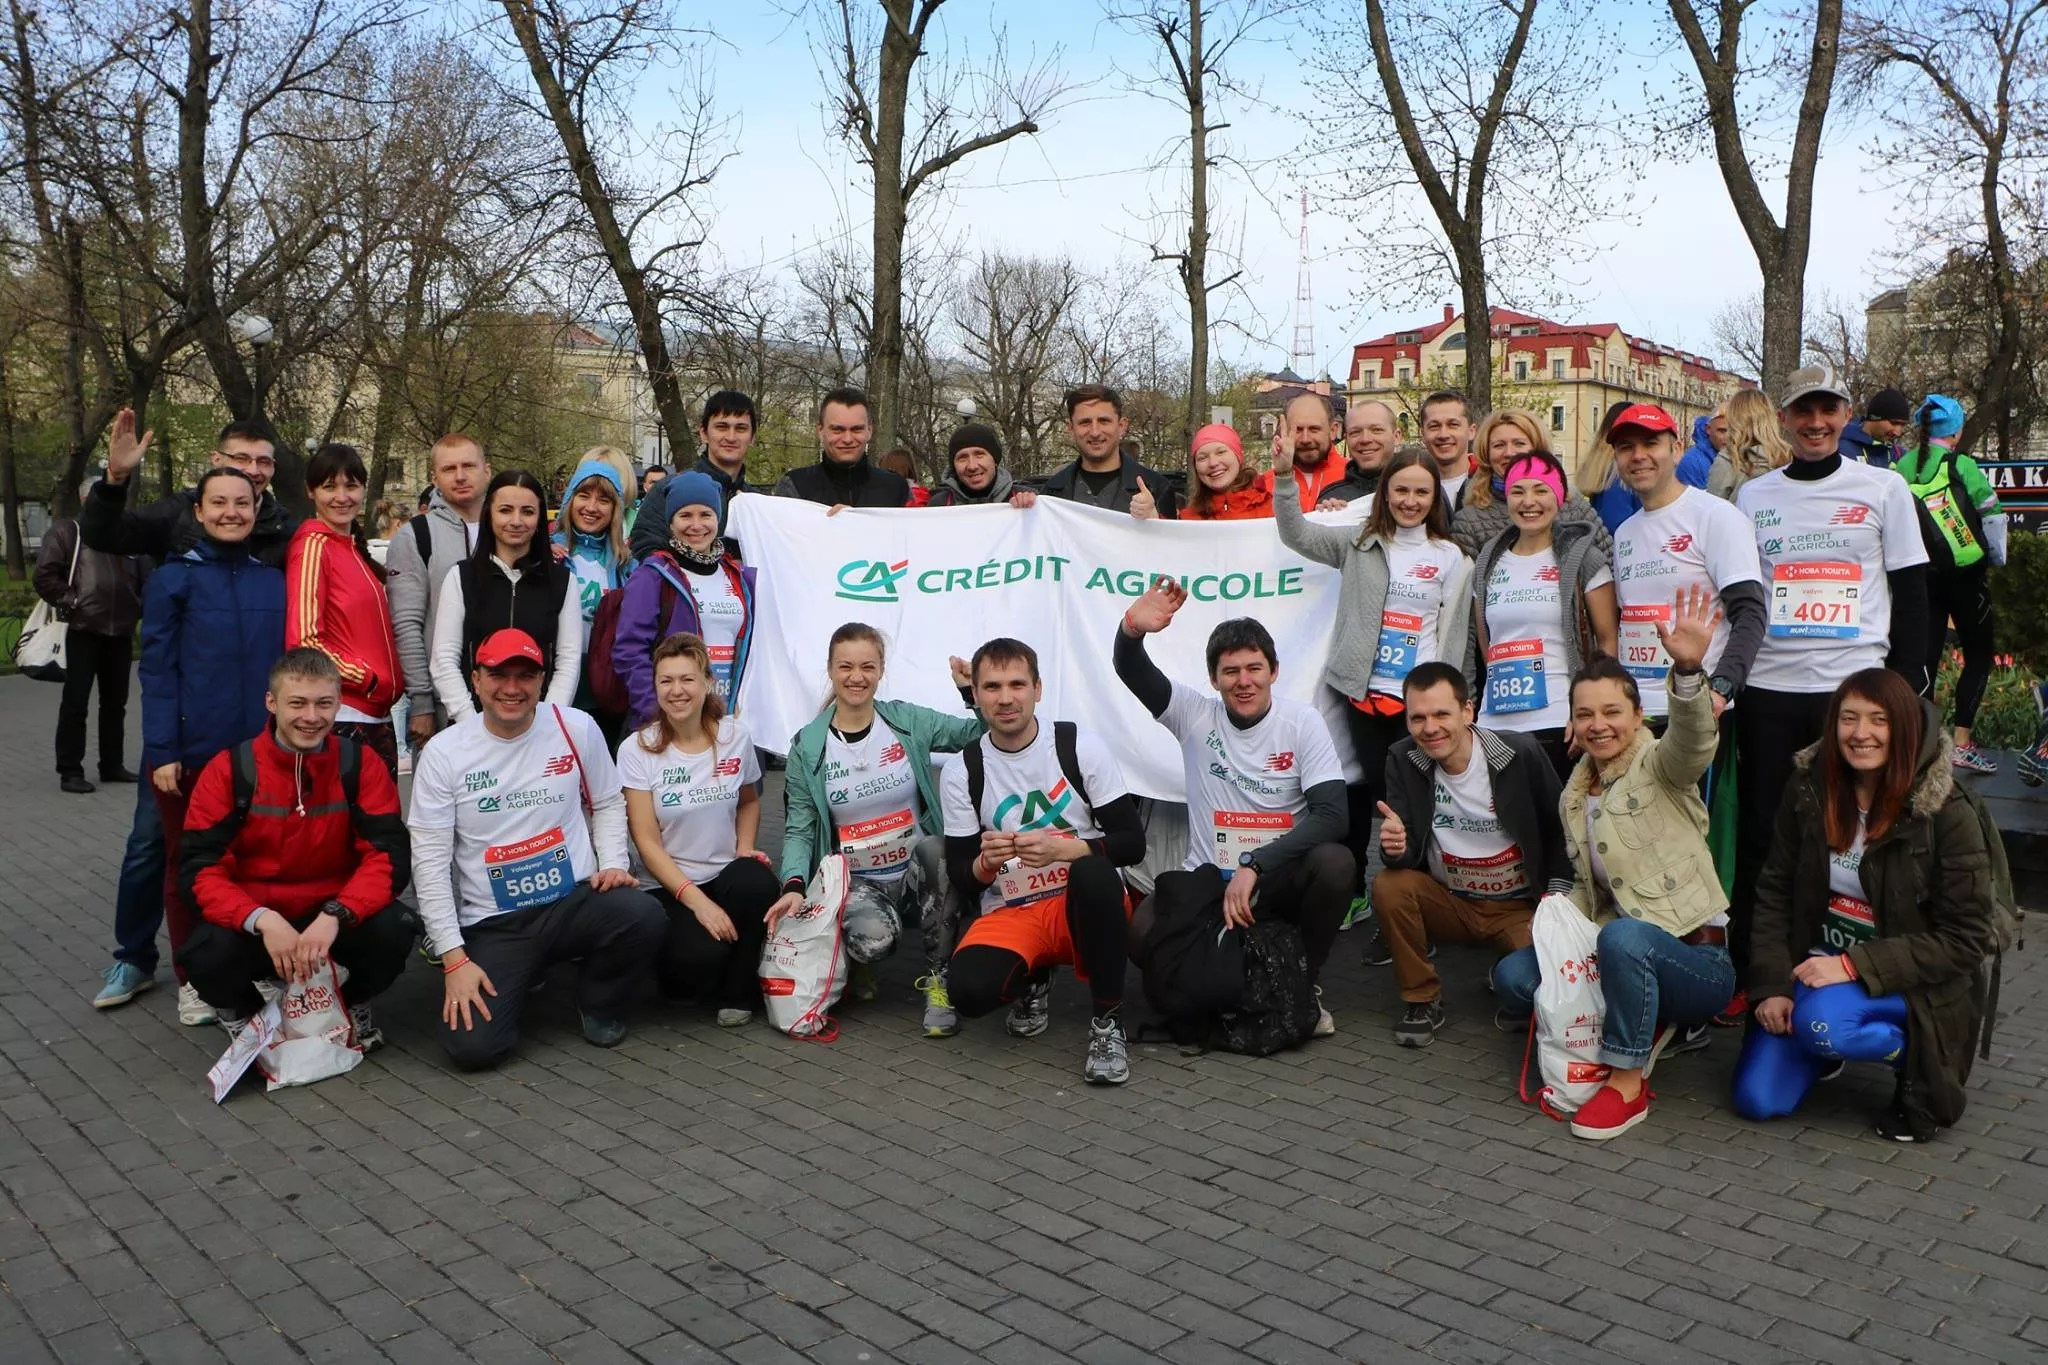 Credit Agricole Bank team among the winners in corporate running     On 9 April 2017 Credit Agricole Bank joined a large scale running event      Nova Poshta Kyiv Half Marathon 2017 and corporate team of 4 runners of the  bank